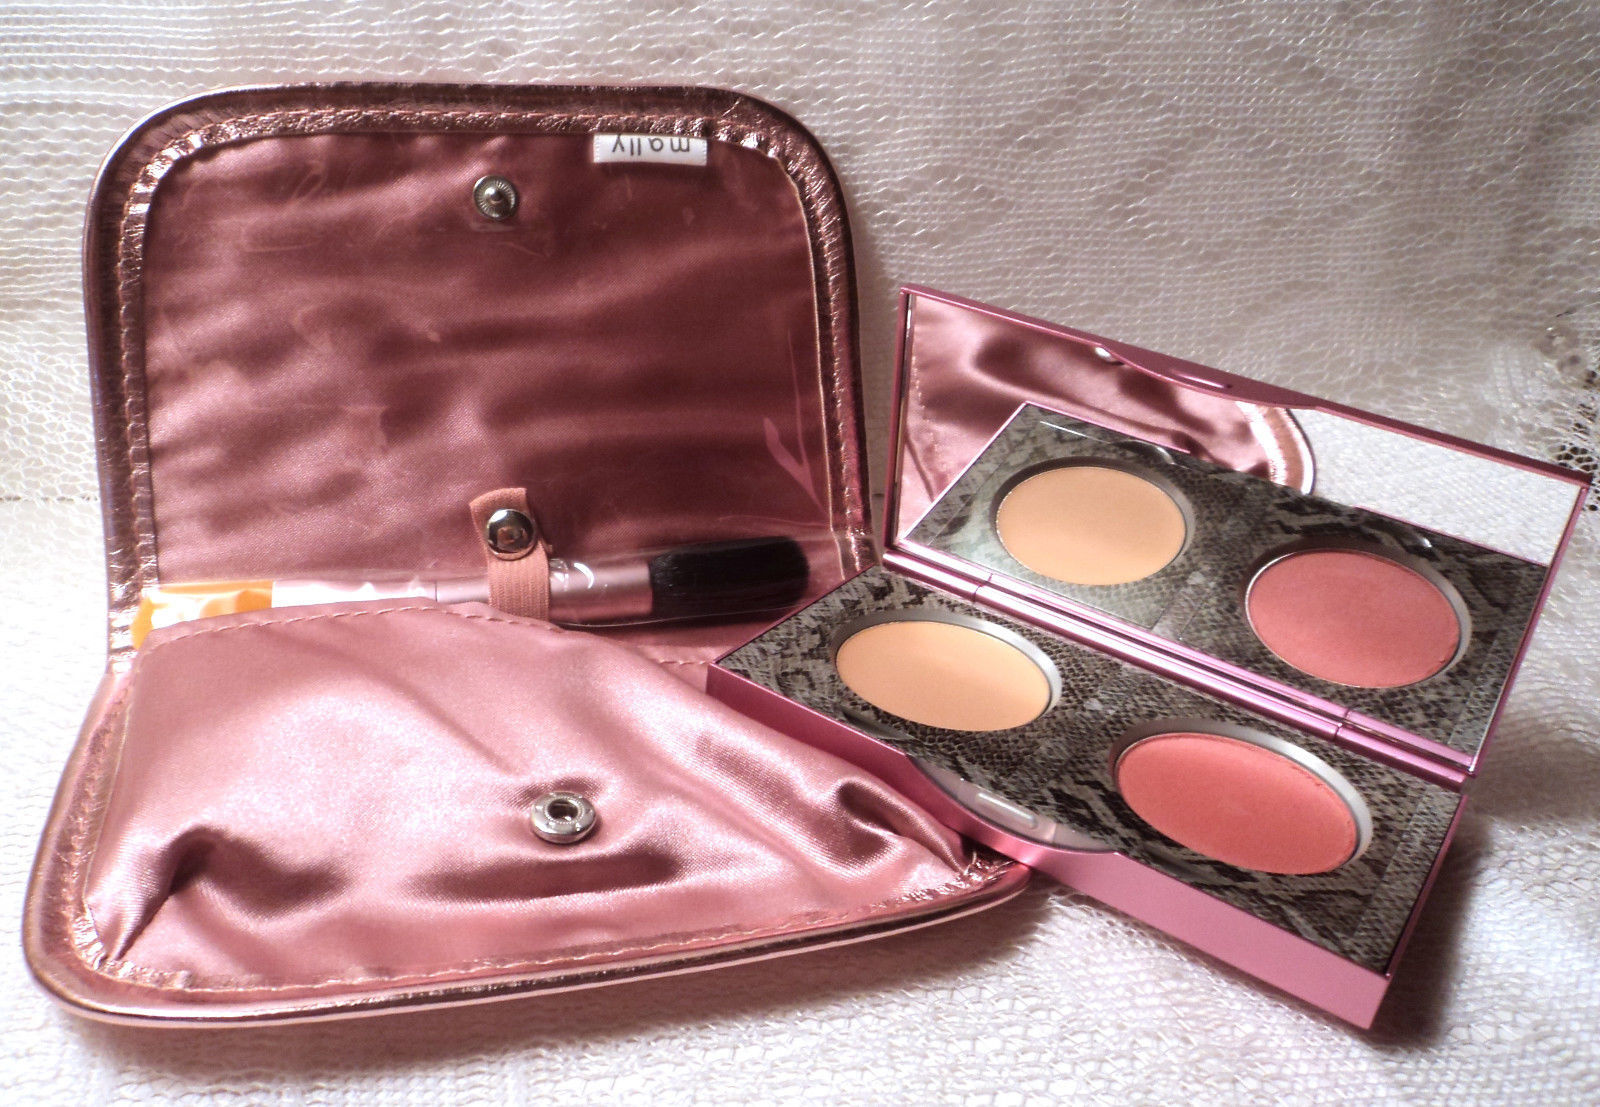 Mally 24/7 Illuminating Blush With Double Sided Brush & Pouch - Deep   - $12.86